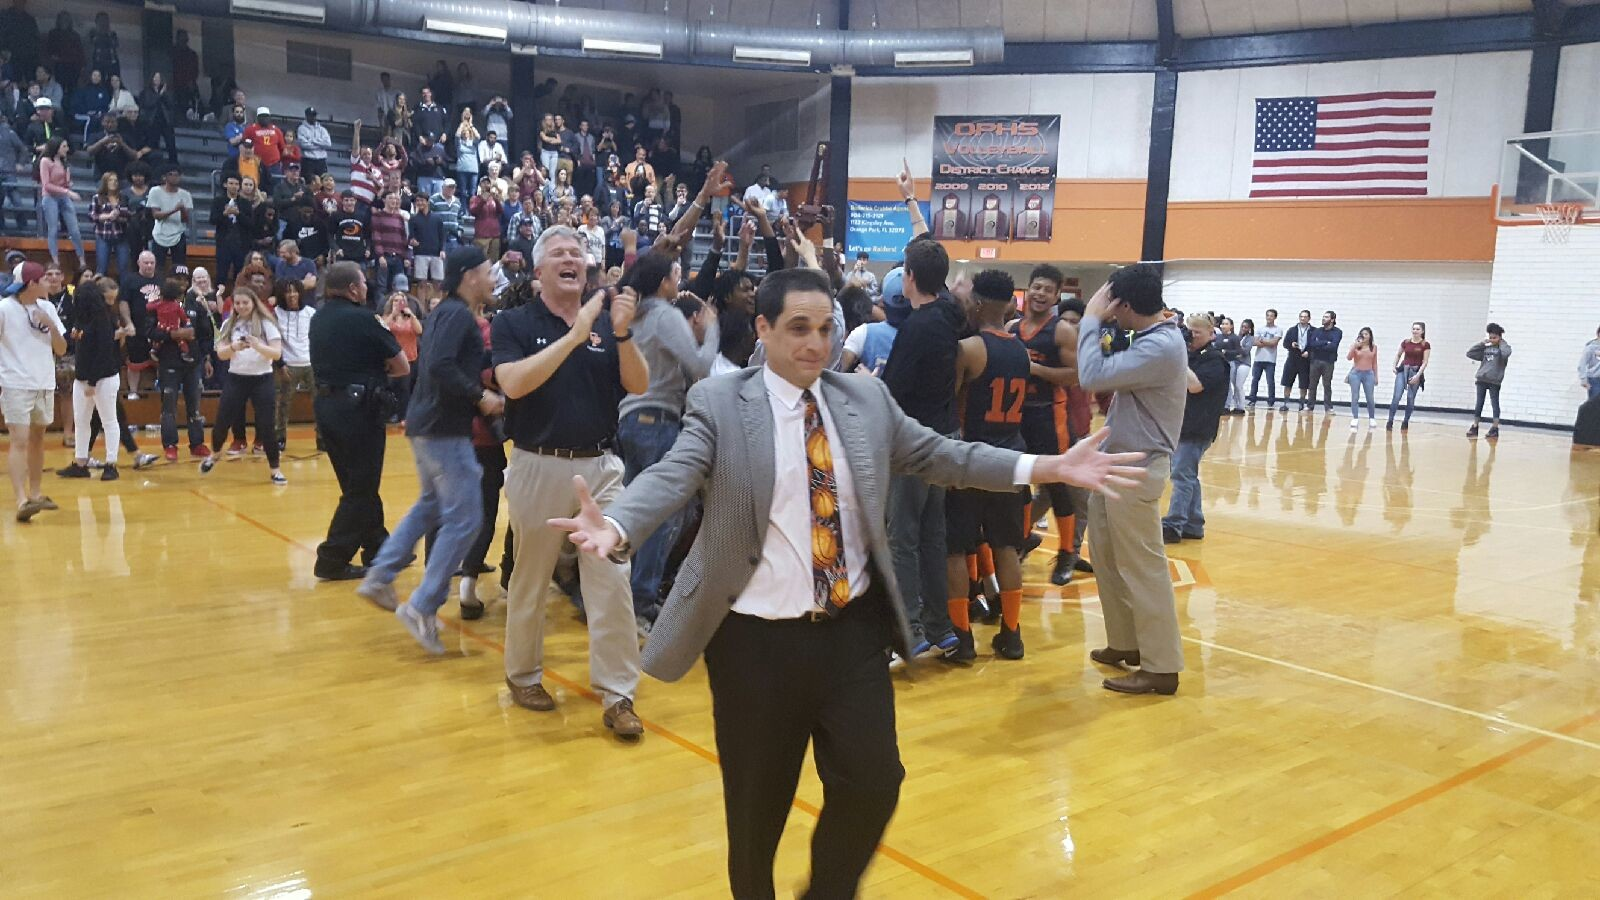 Orange park basketball coach Derek Kurnitsky is all smiles after Raiders beat Baker county 60-52 in district 4-6A final. Raiders are only county team in state playoffs.